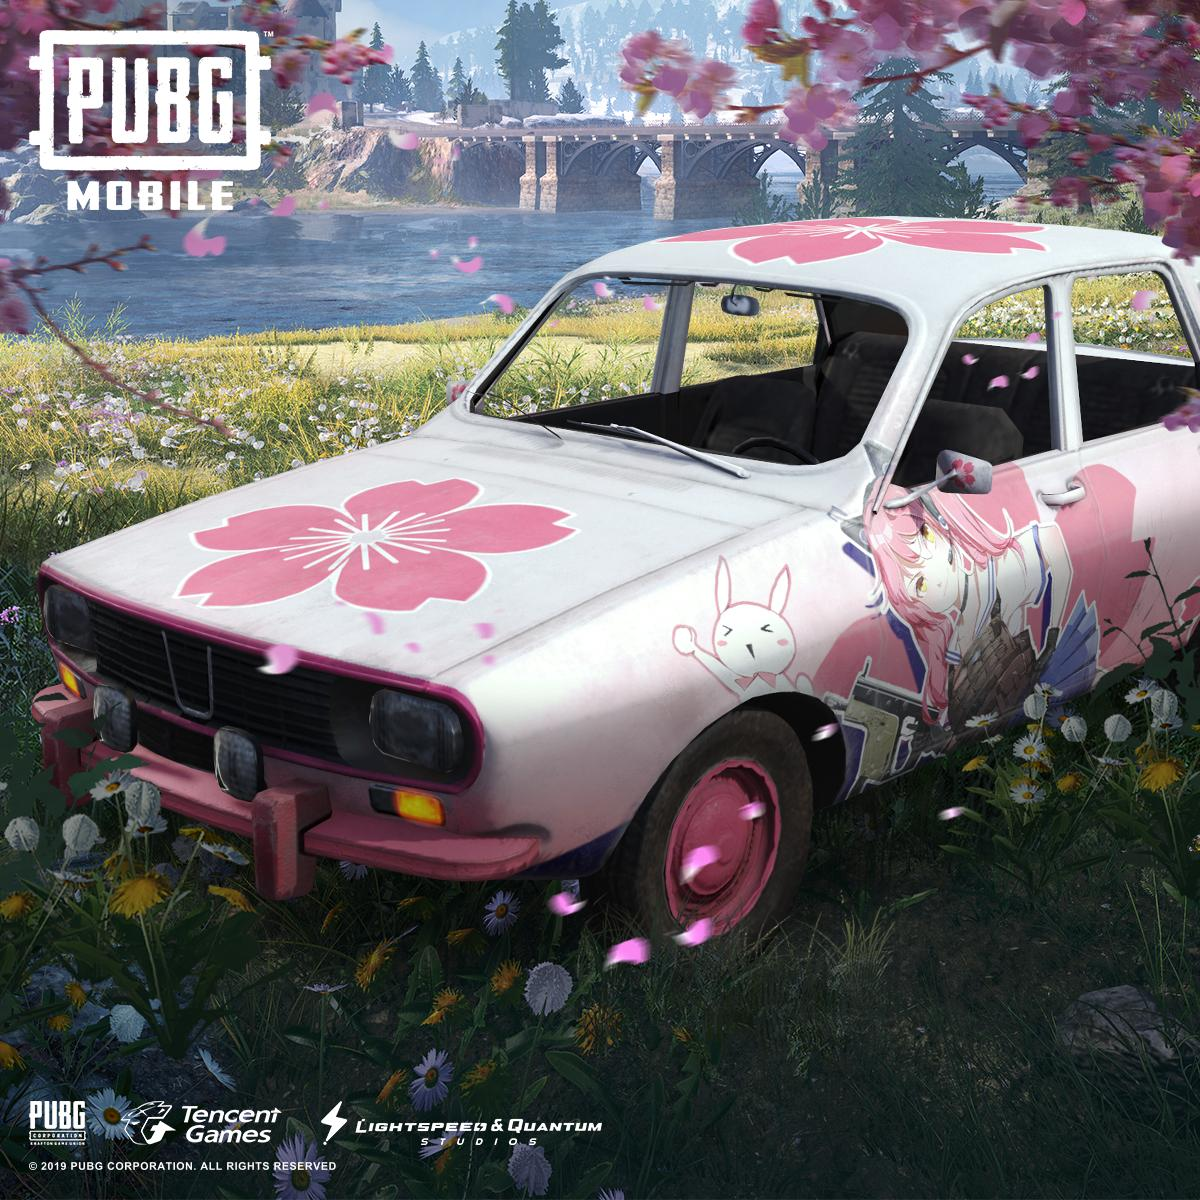 Sakura Dacia PUBG car wallpaper